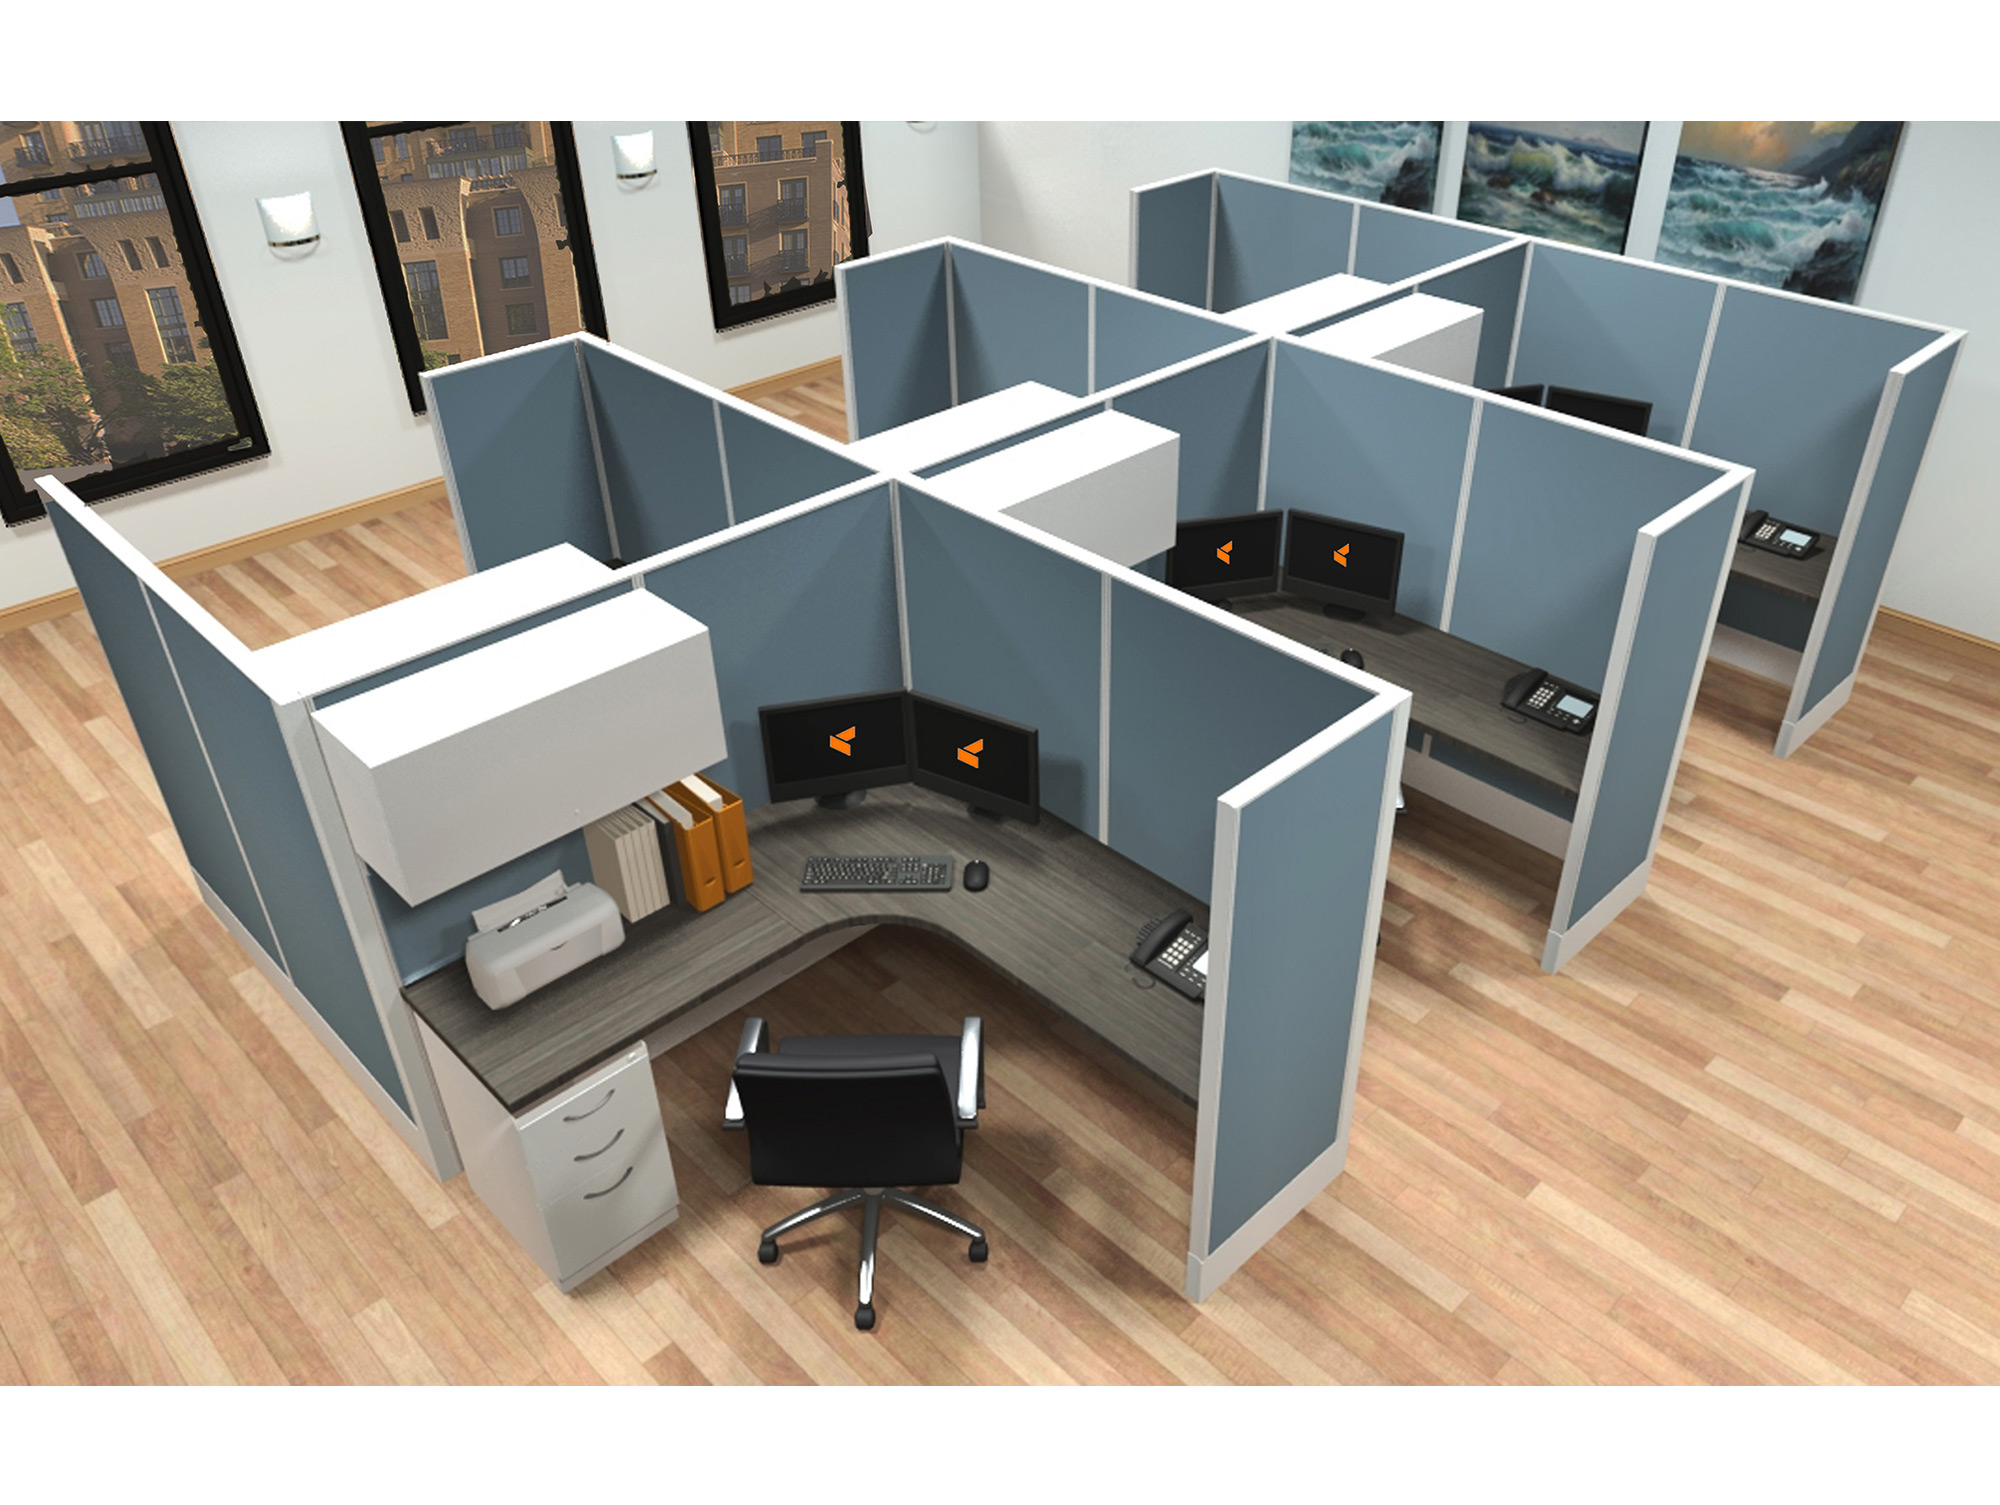 6x6 modular workstations from AIS - 6 Pack Cluster